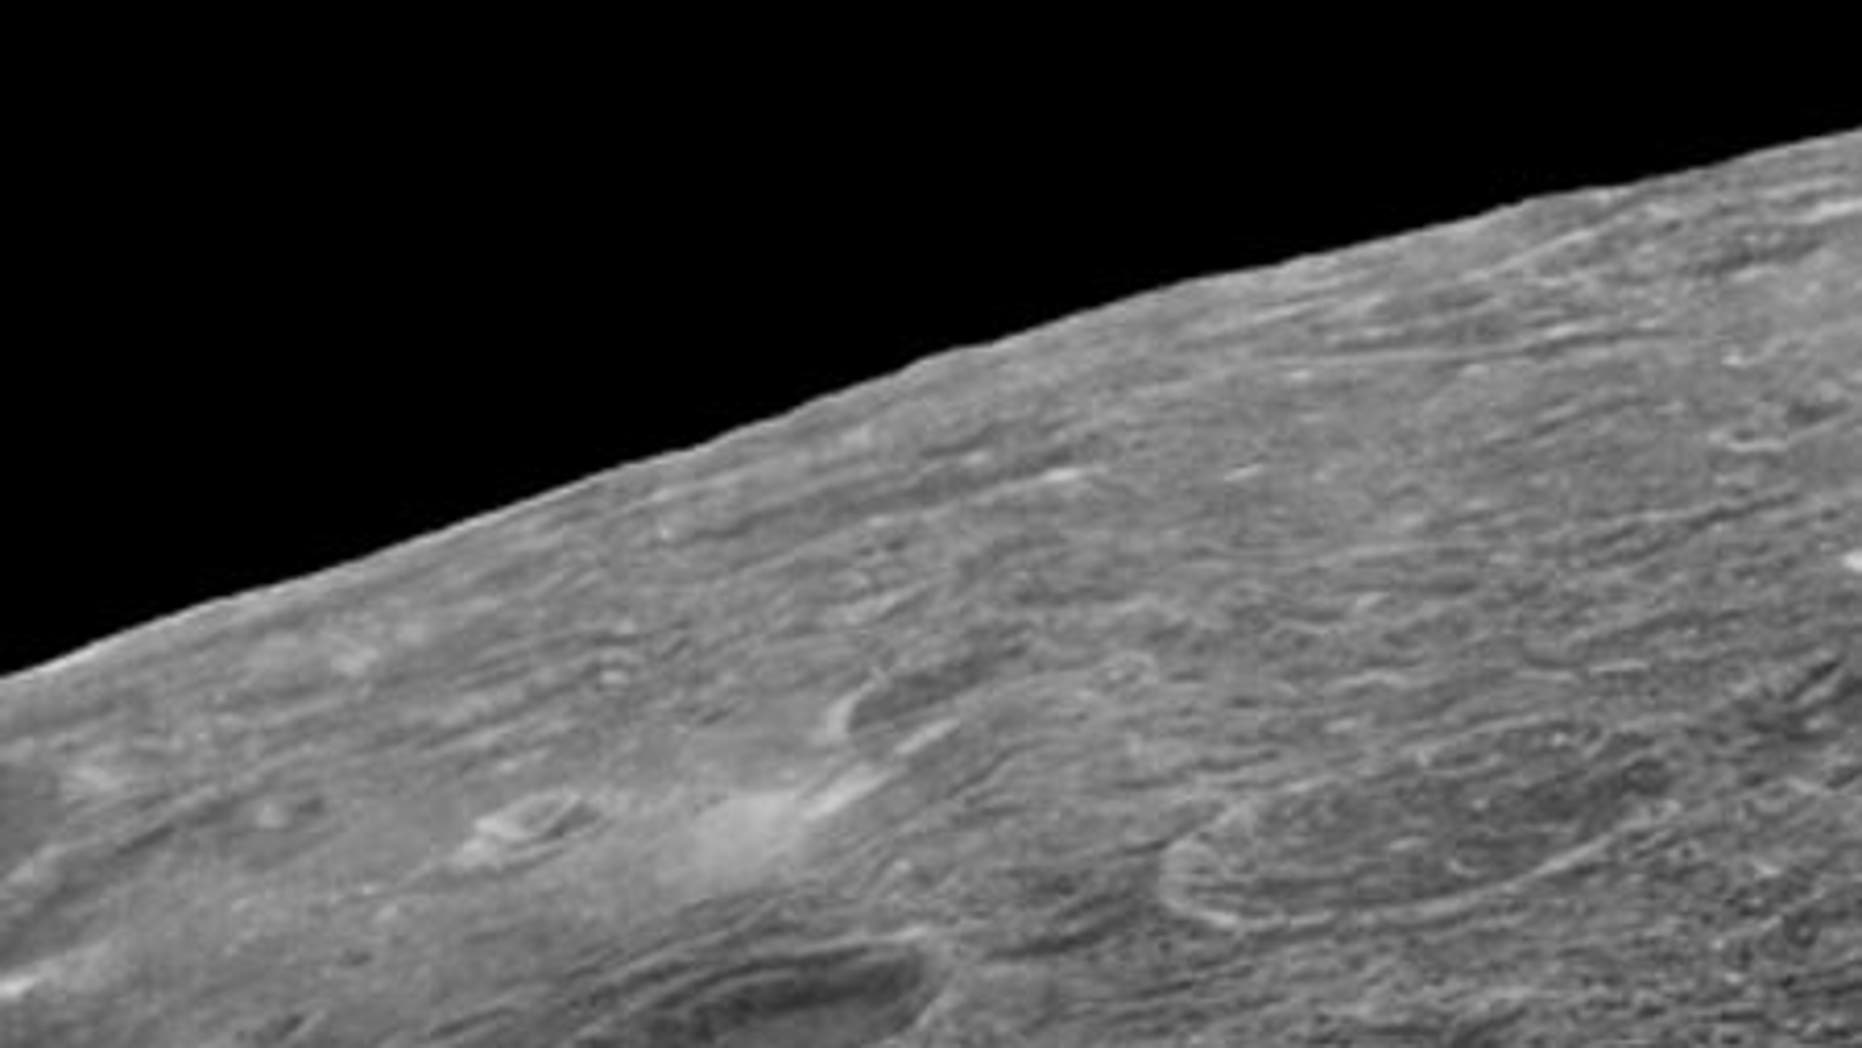 The Lunar Orbiter Image Recovery Project (LOIRP) is providing a refreshing look at the Moon and Earth – imagery taken some 40 years ago.